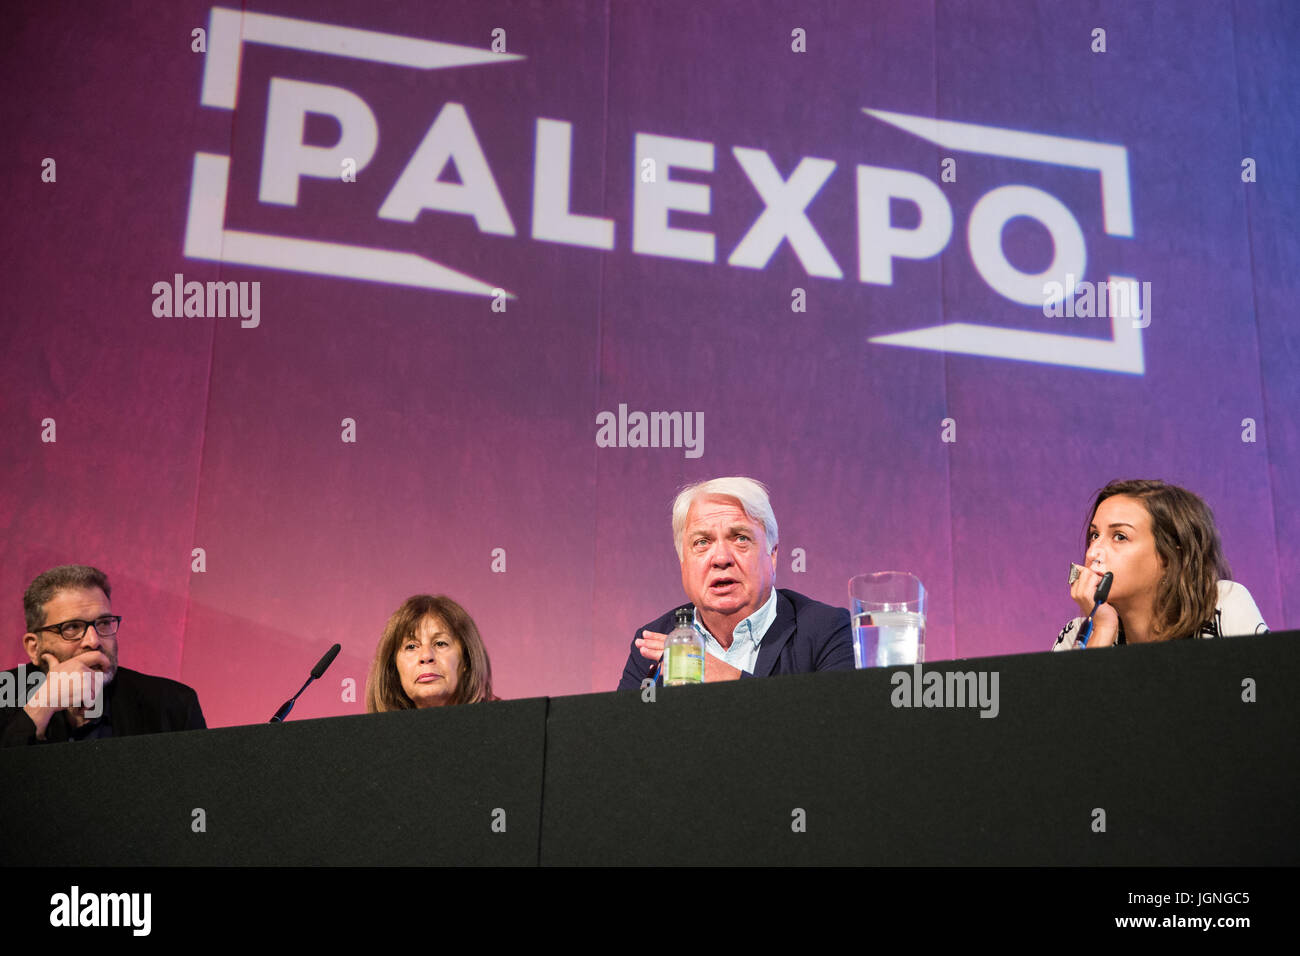 London, UK. 8th July, 2017. Hugh Lanning, Chair of Palestine Solidarity Campaign, addresses a session of Palestine - Stock Image